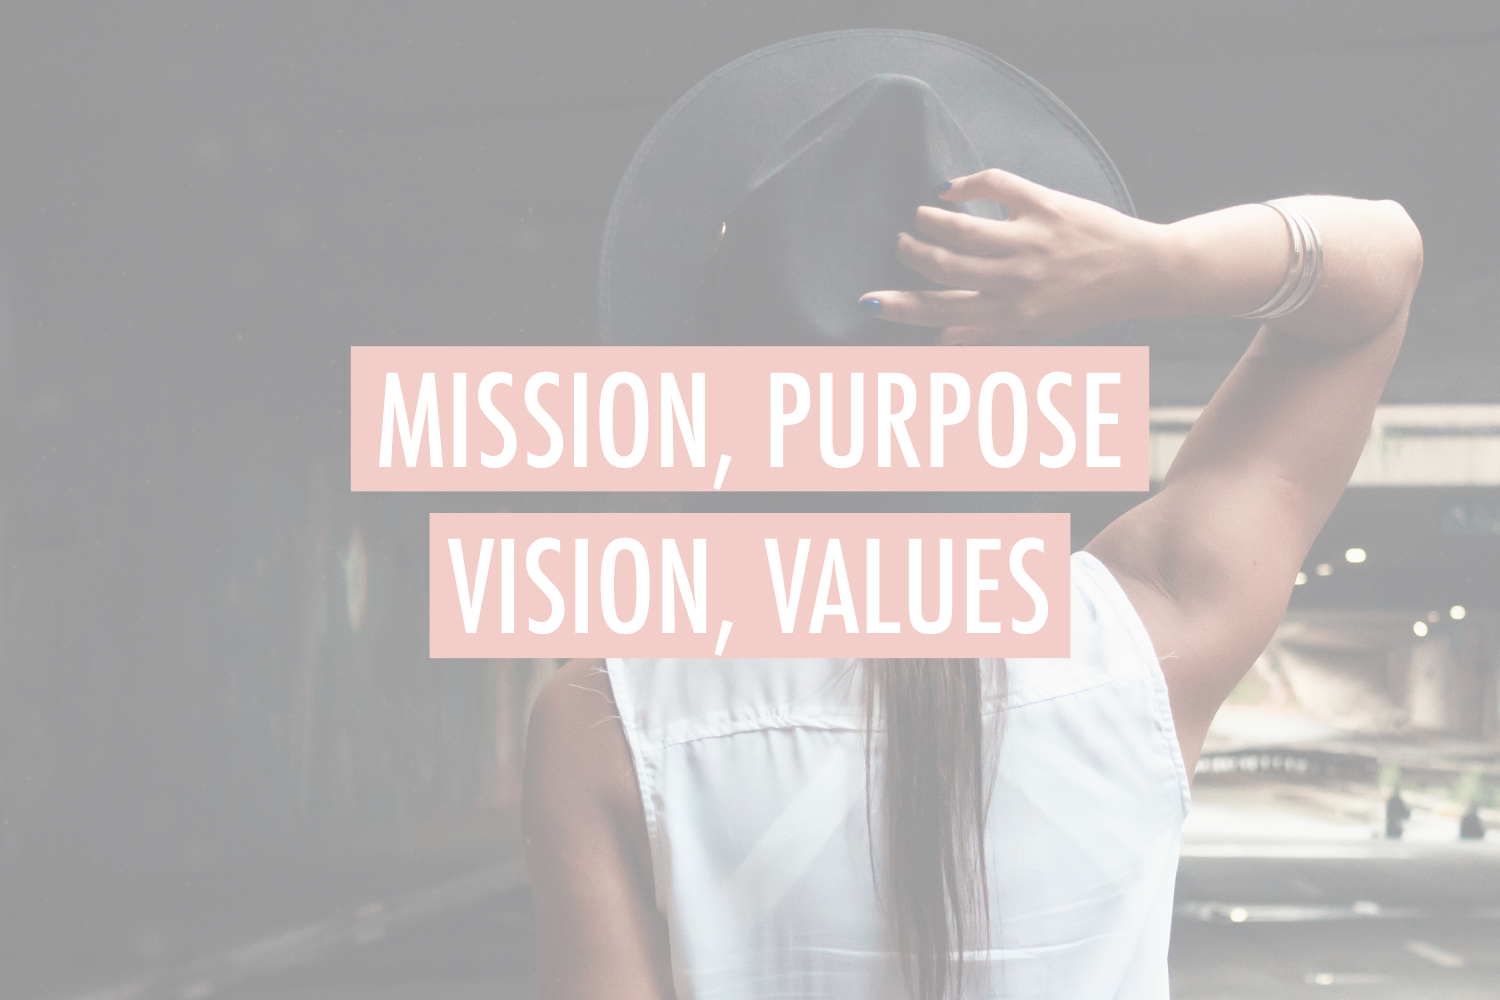 Mission purpose vision values - stacy kessler